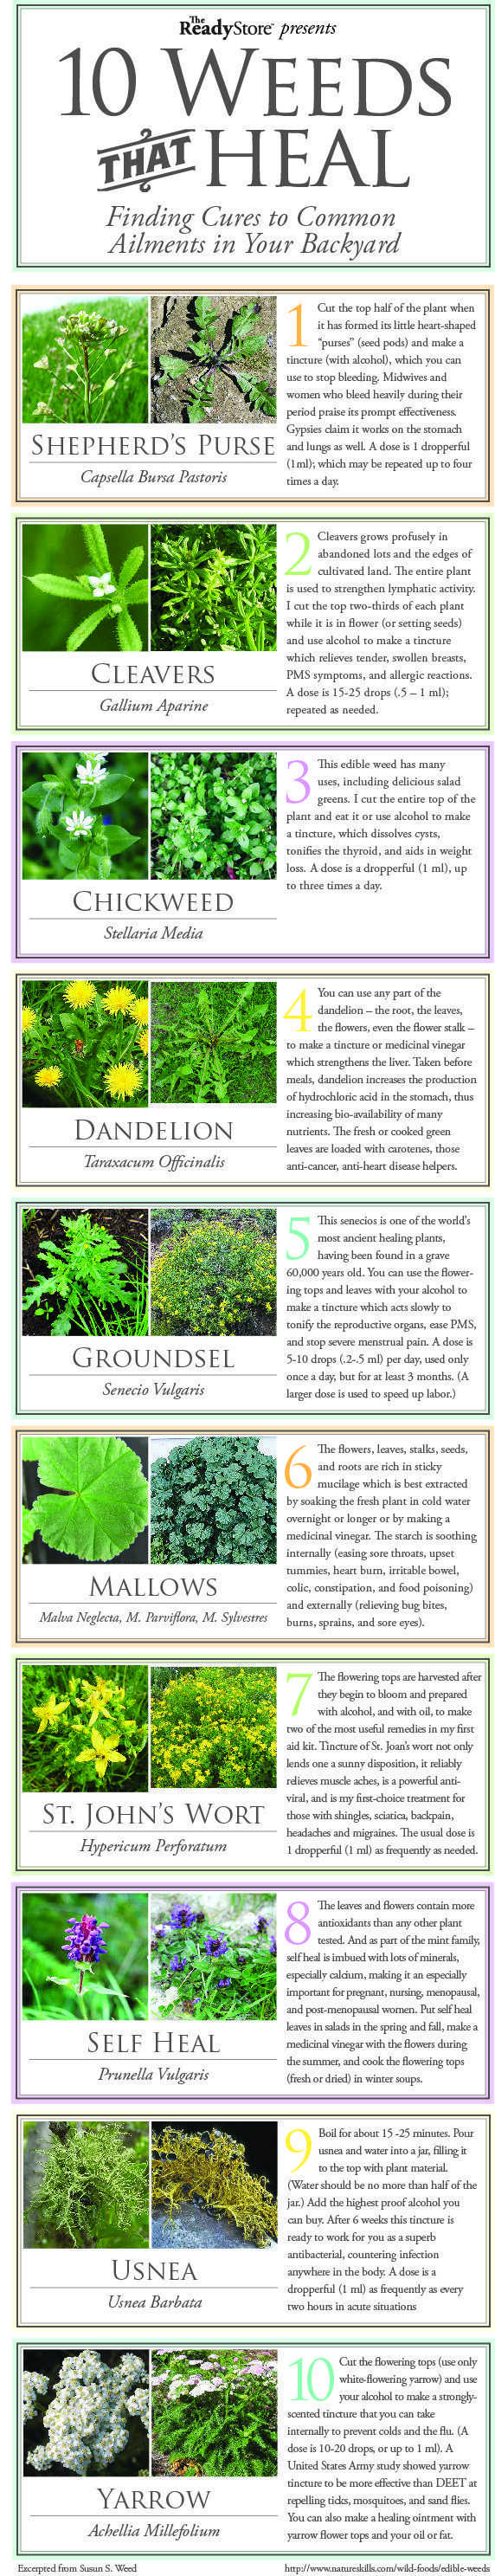 10 Weeds that Heal | Weeds you can find in your backyard you may not've known can heal. #SurvivalLife http://www.SurvivalLife.com